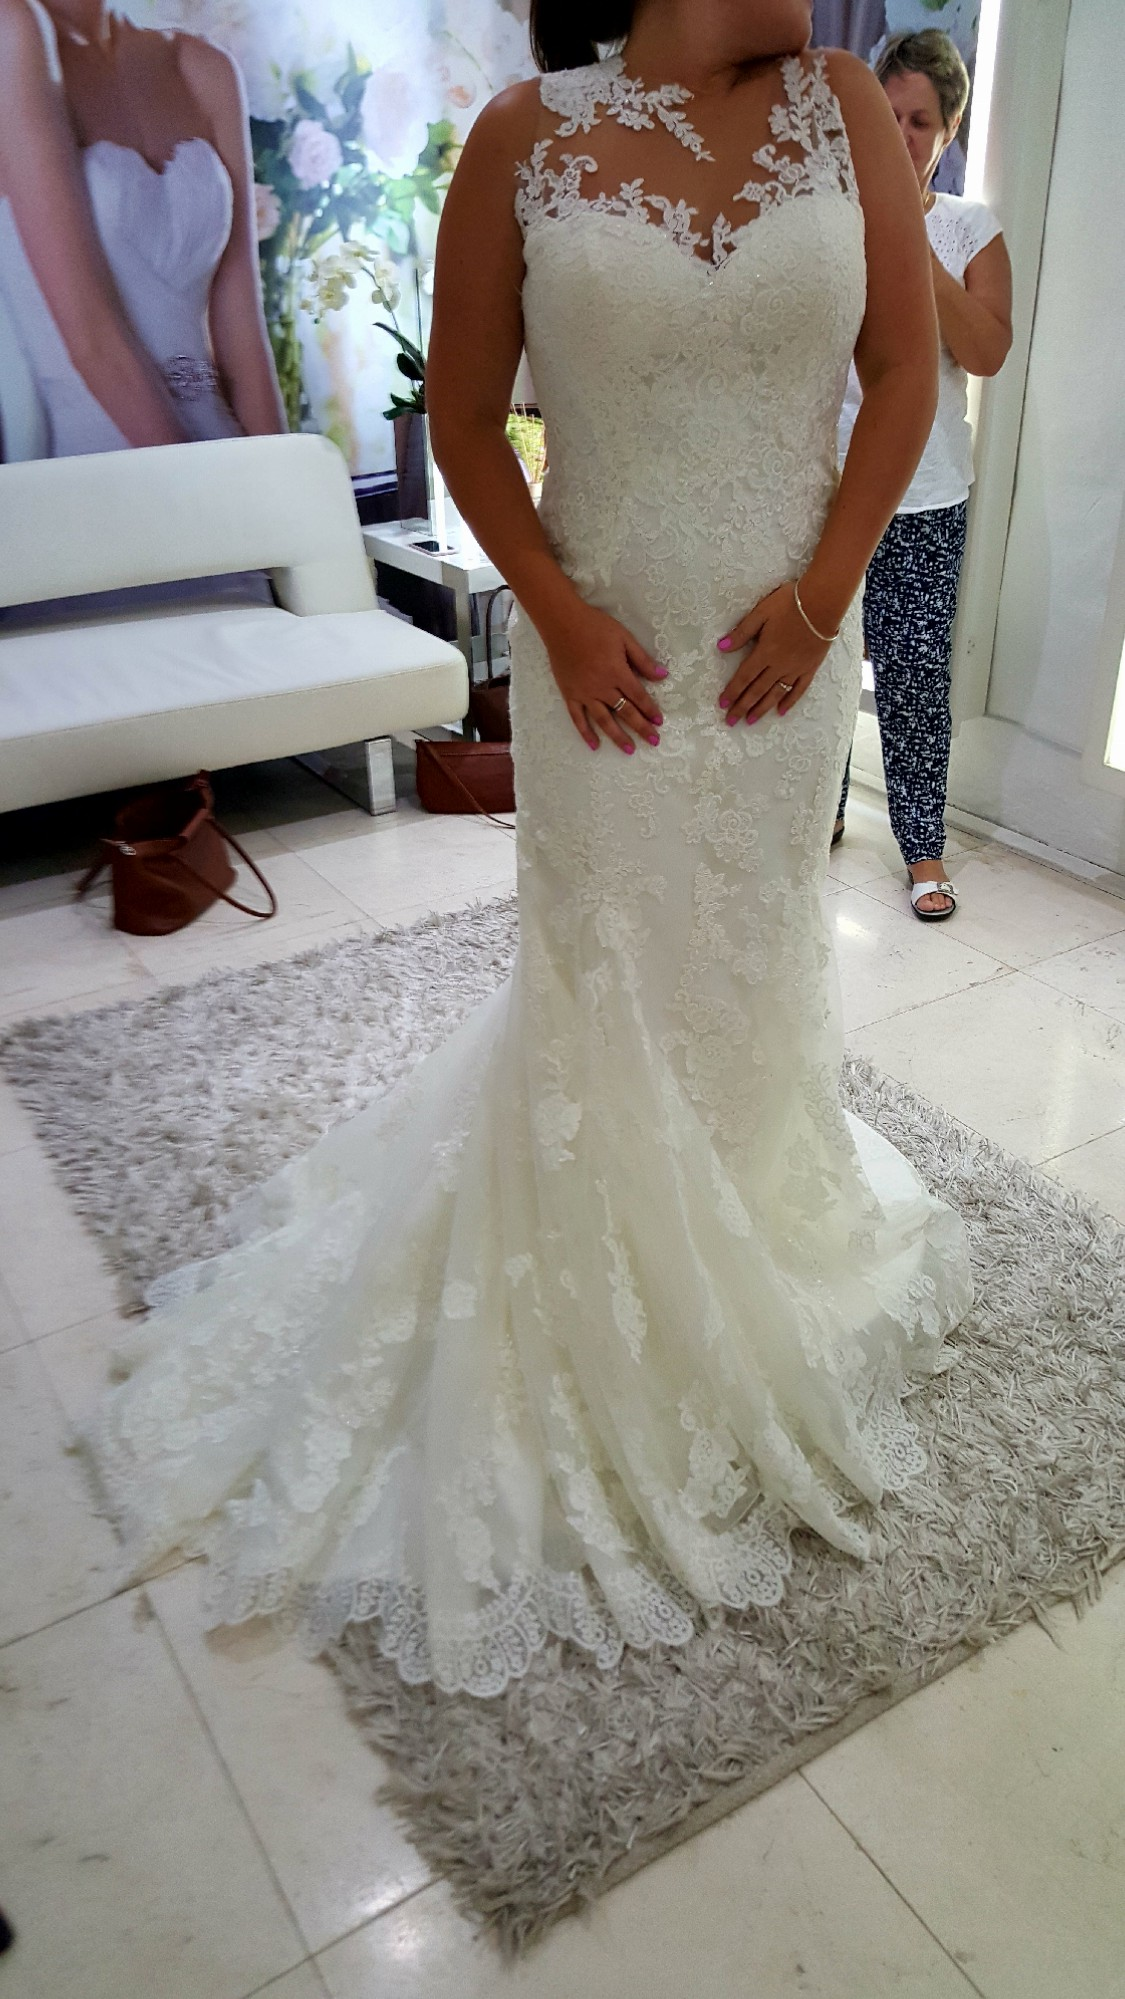 San patrick zaneta wedding dress on sale for Sell wedding dress san diego